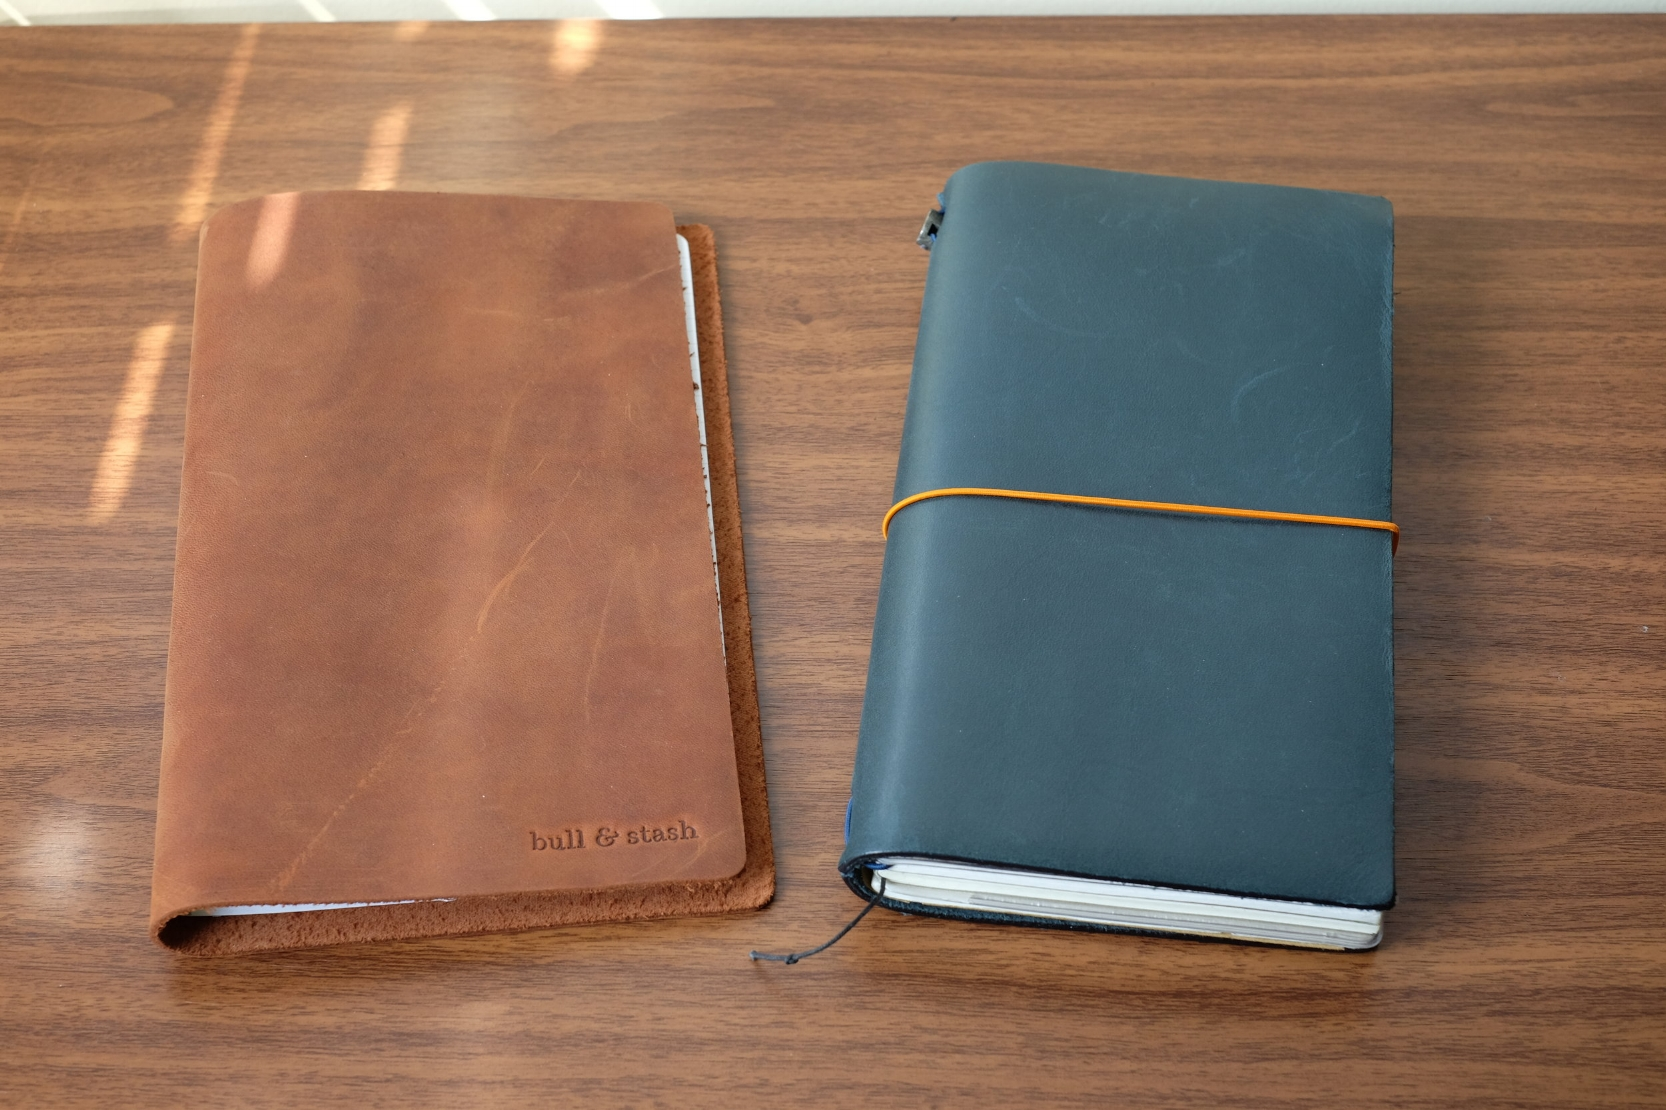 Bull-and-Stash-Travelers-Notebook-Size-Comparison